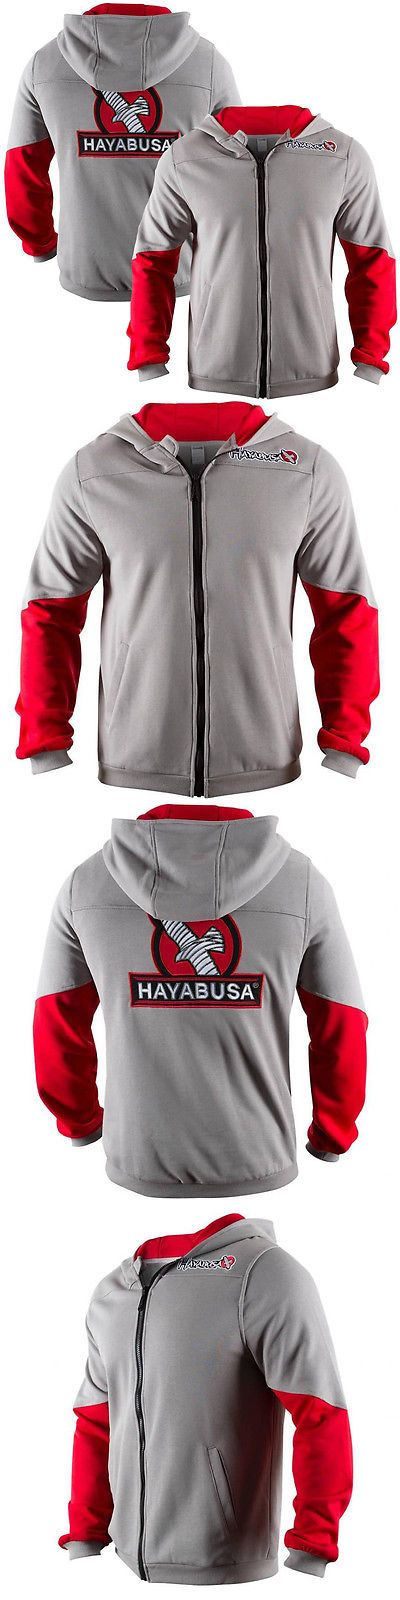 Hoodies and Sweatshirts 179770: Hayabusa Wingback Classic Fit Zip-Up Hoodie - Gray/Red-Boxing Mma Sweatshirt -> BUY IT NOW ONLY: $79.99 on eBay!